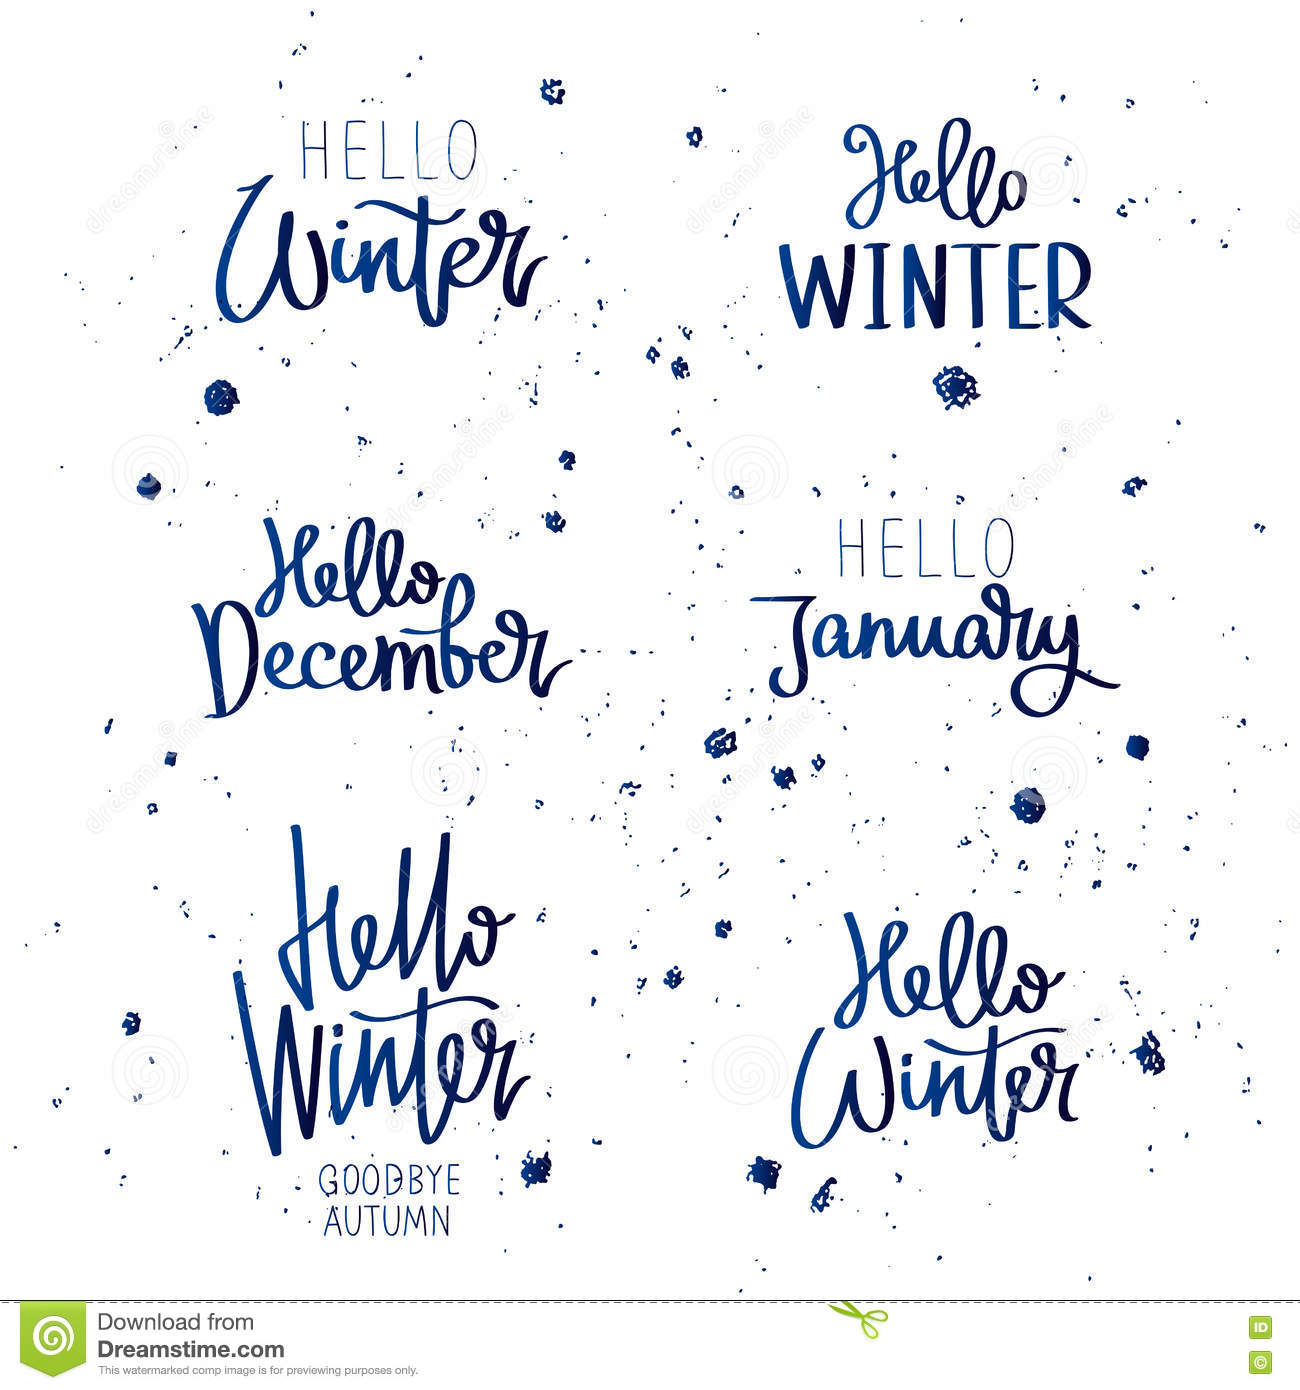 Set quotes about winter stock vector image of snow season 77109274 - Autumn plowing time all set for winter ...